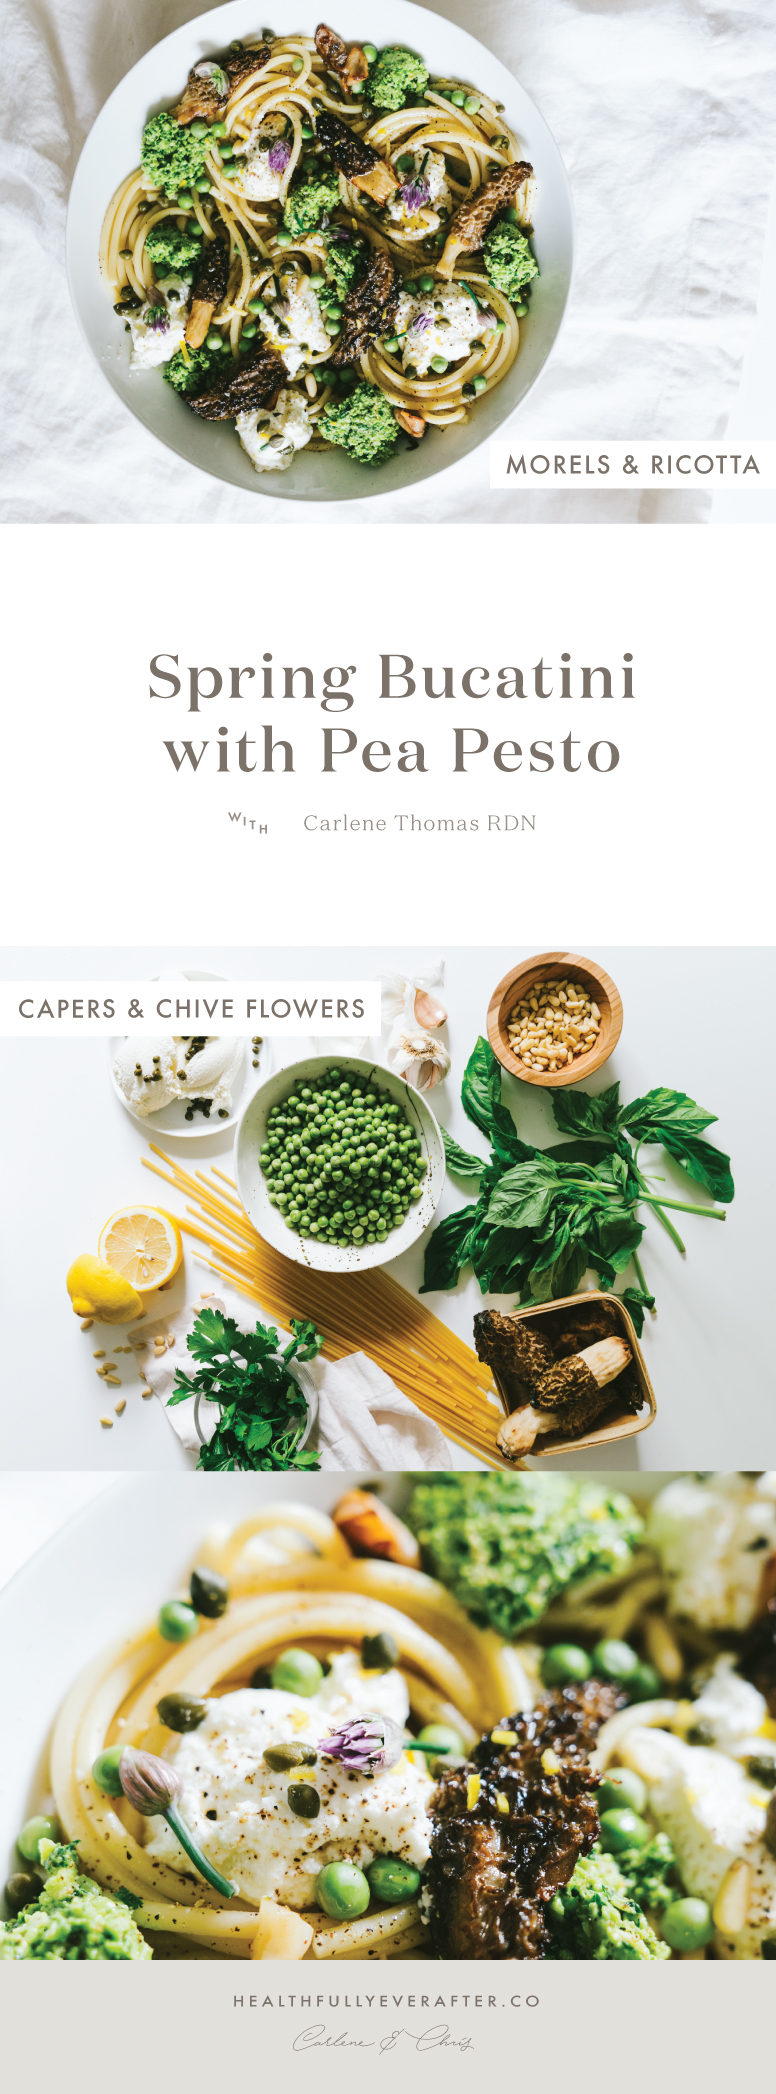 spring bucatini with pea pesto and morrells